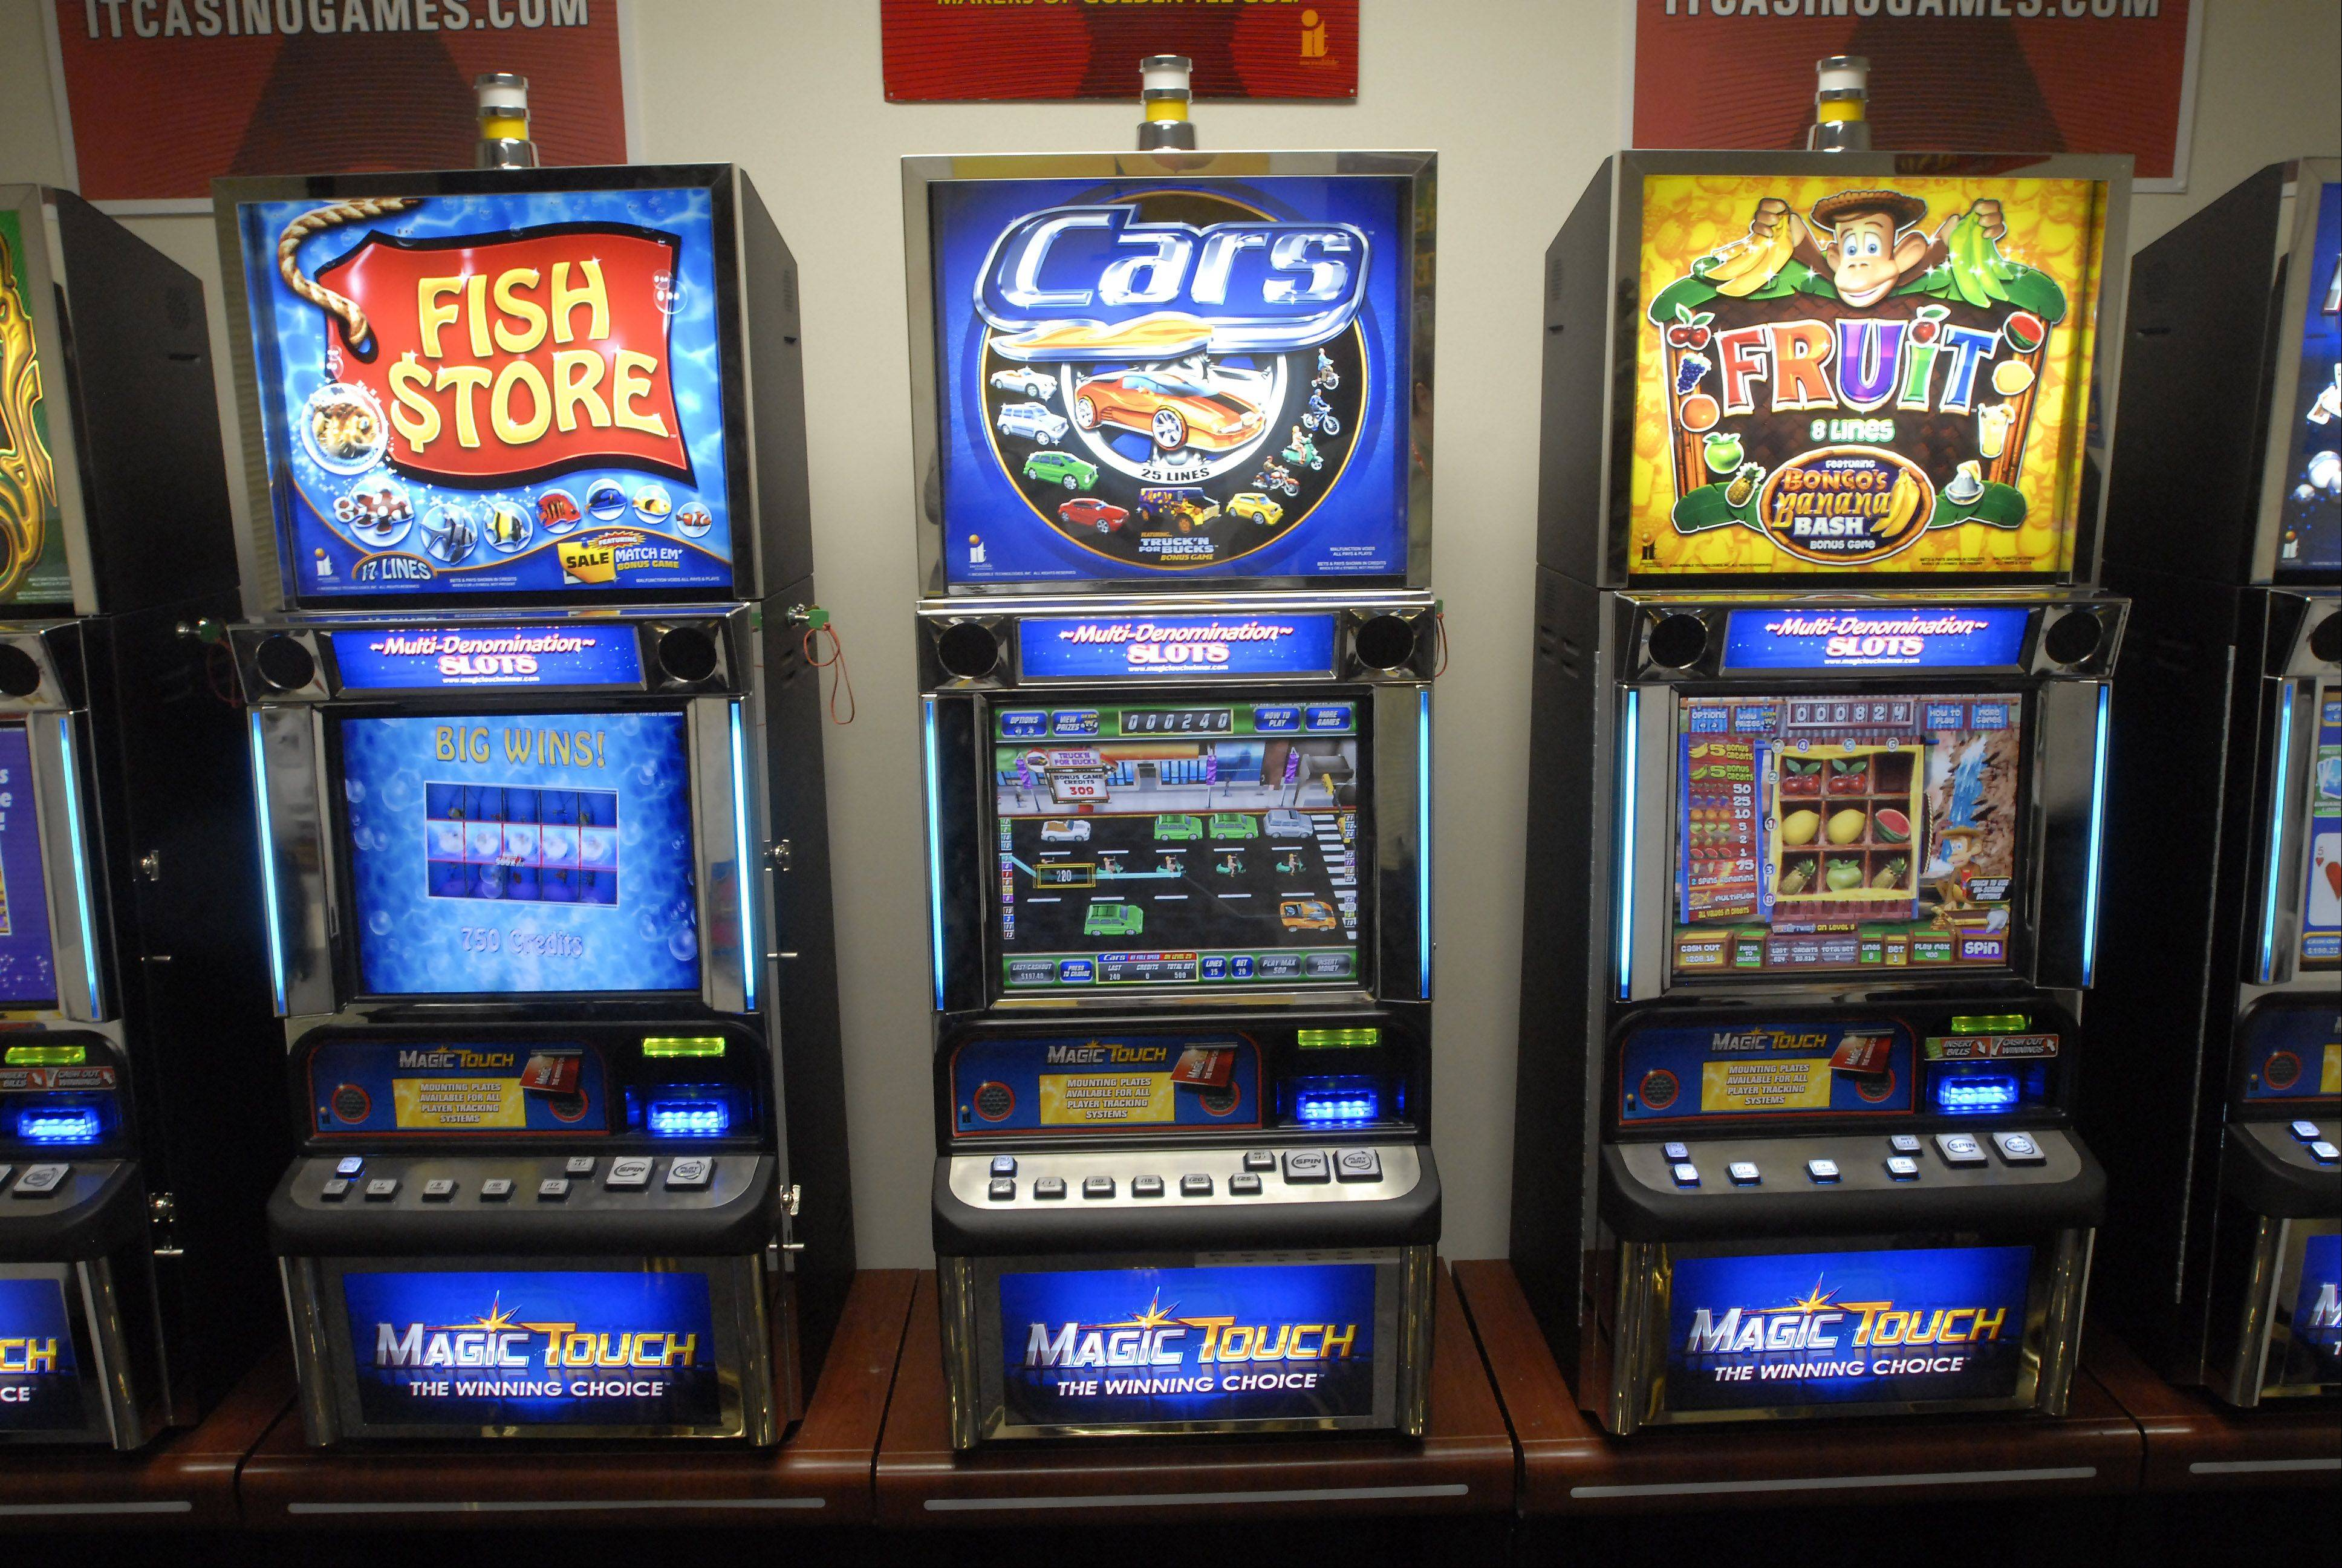 Voters in Winfield and Wood Dale soon will get to share their opinion on whether video gambling machines should be allowed in their towns. Video gambling is among a variety of topics that will appear on Nov. 6 ballots throughout DuPage County.